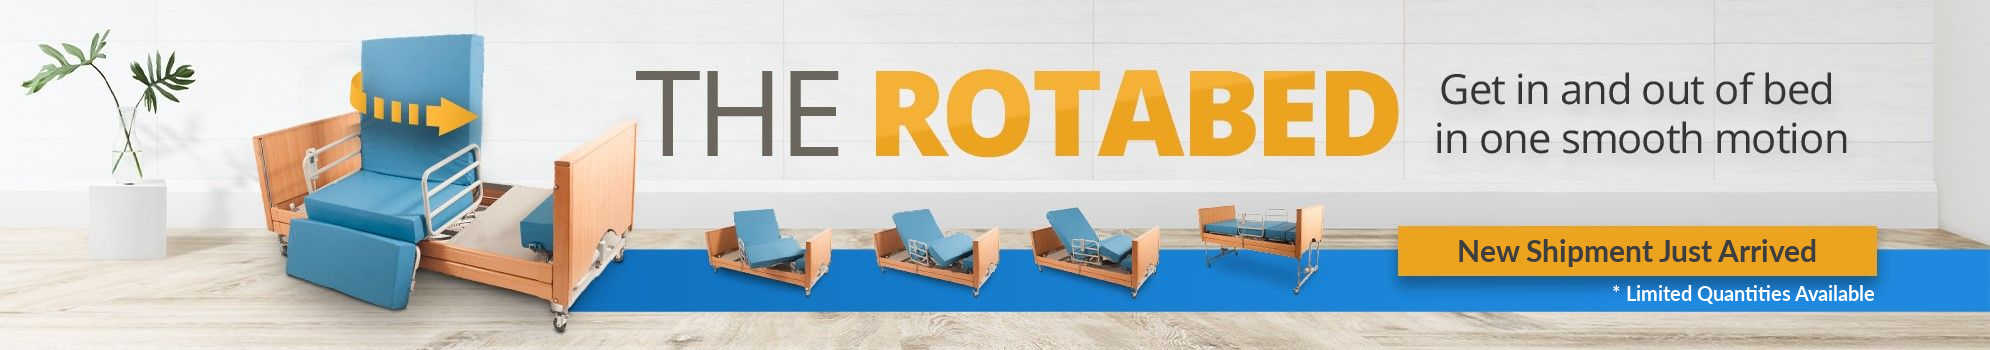 Rotabed Rotating Chair Bed